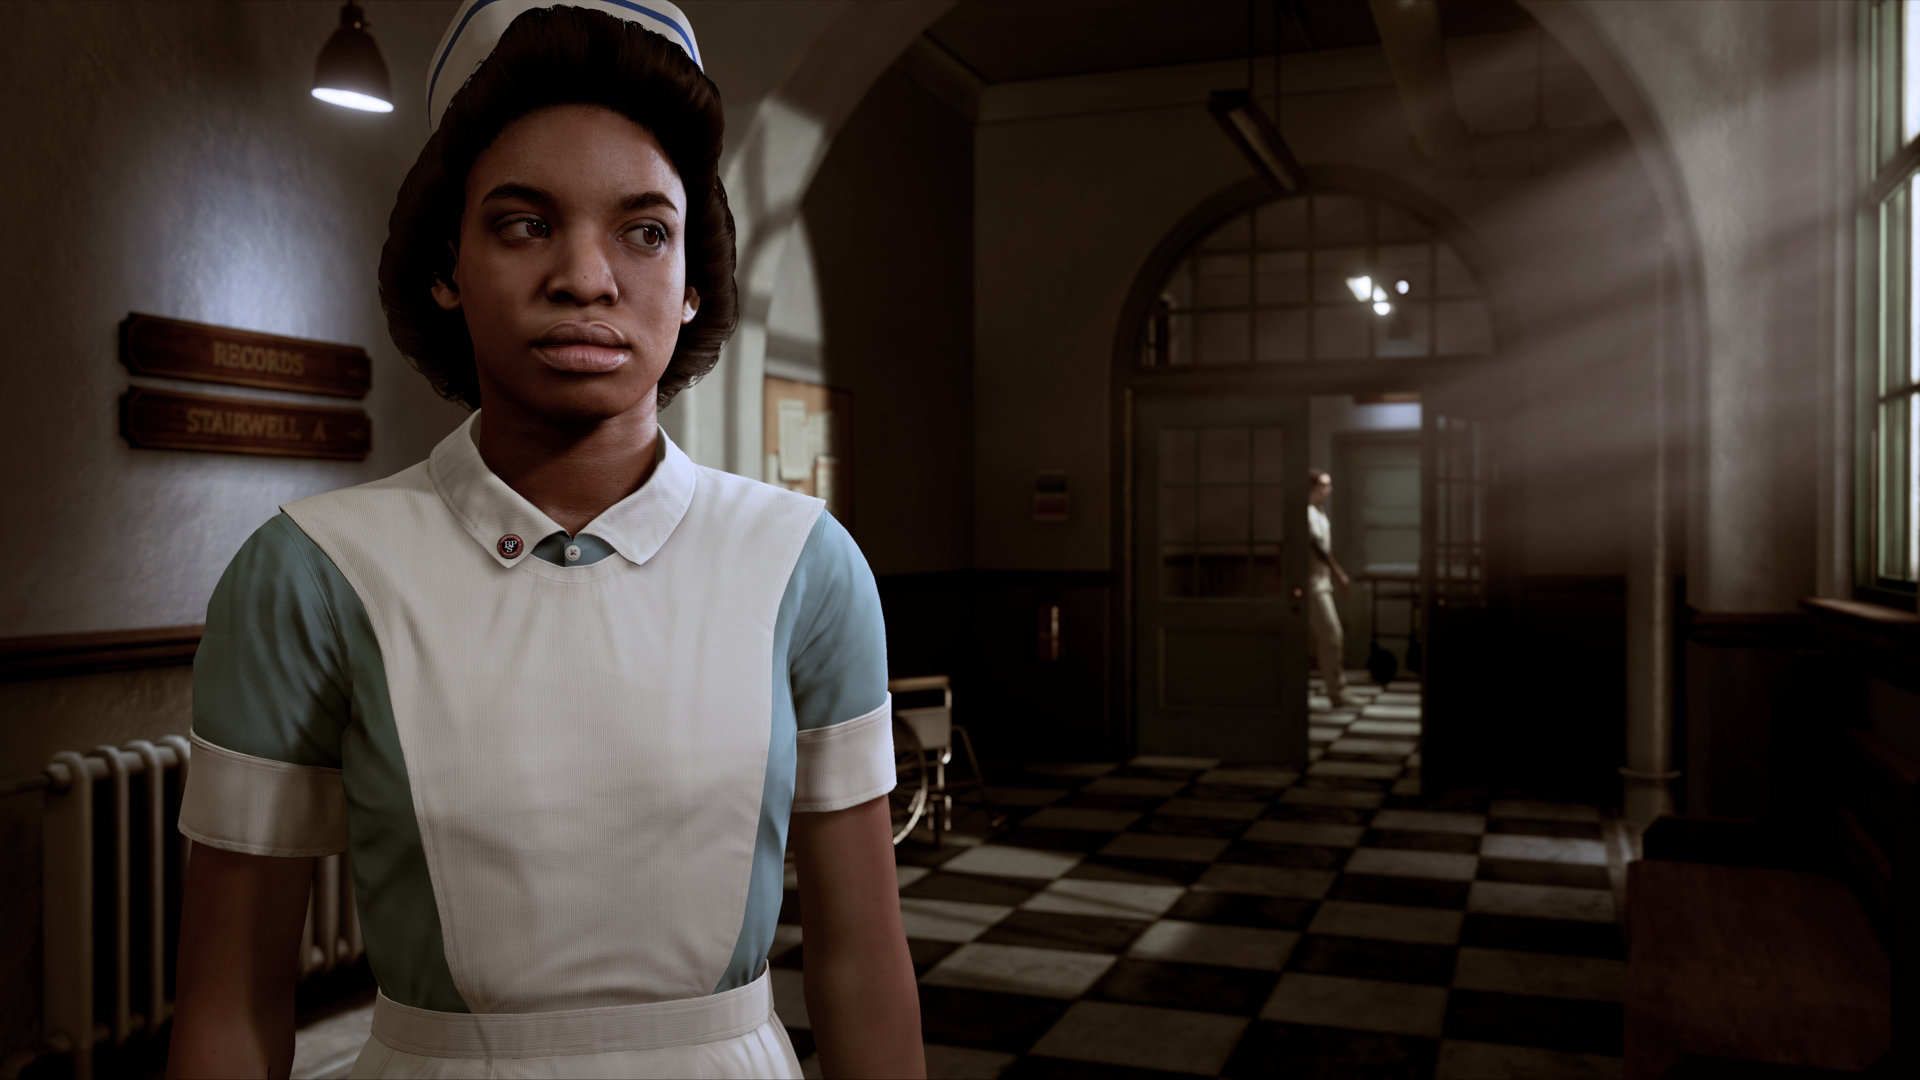 The Inpatient for PS VR